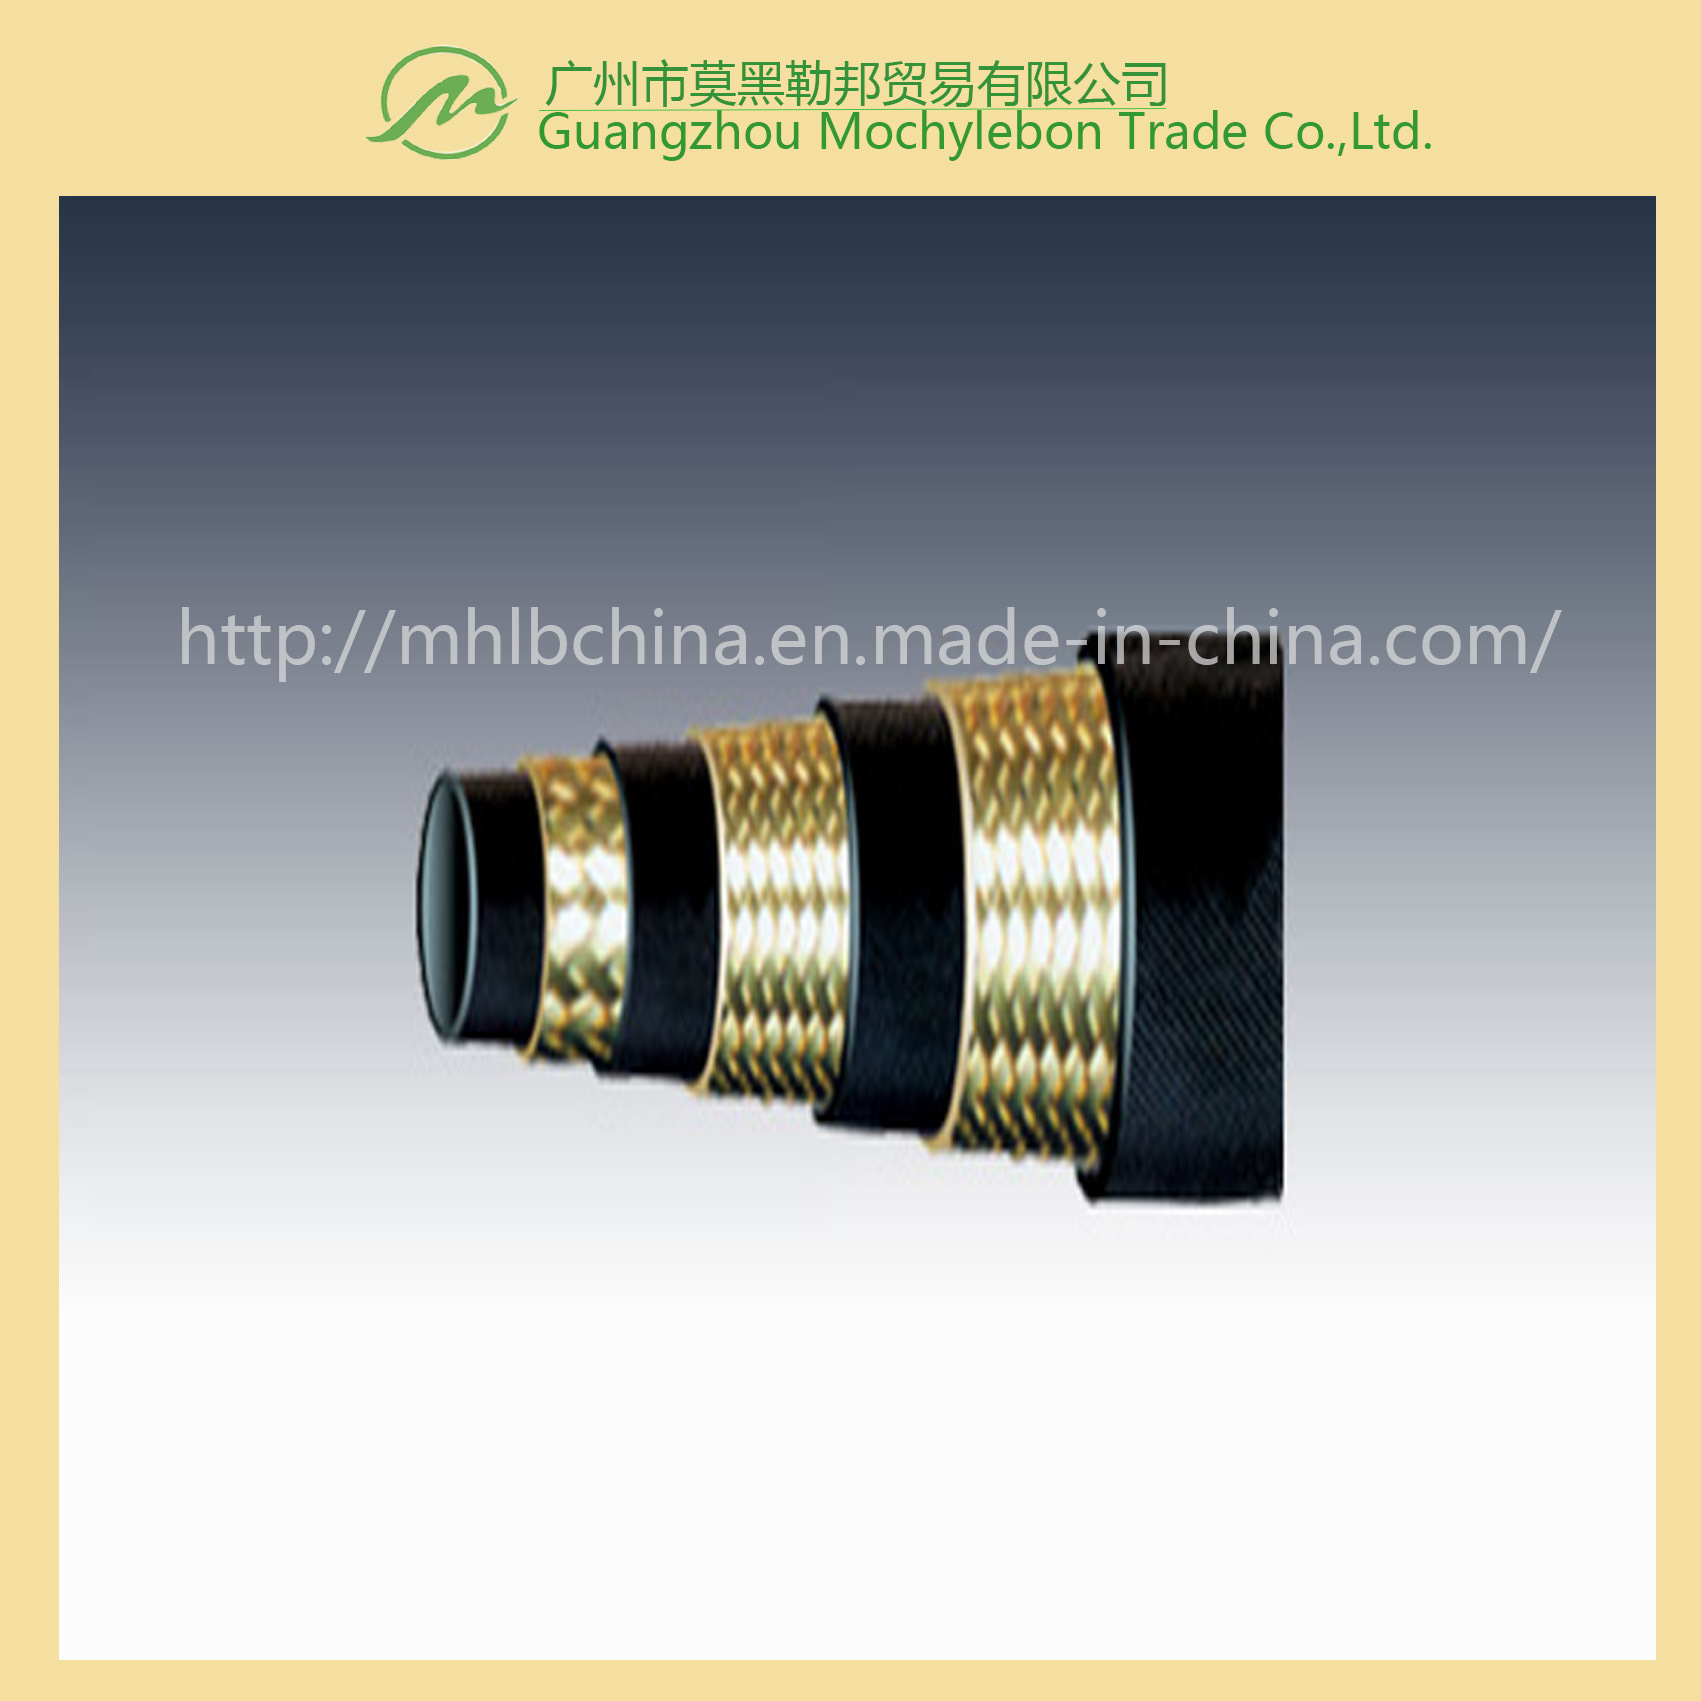 Wire Braided Hydraulic Hose for Coal Mine (602-3B-1-1/2)